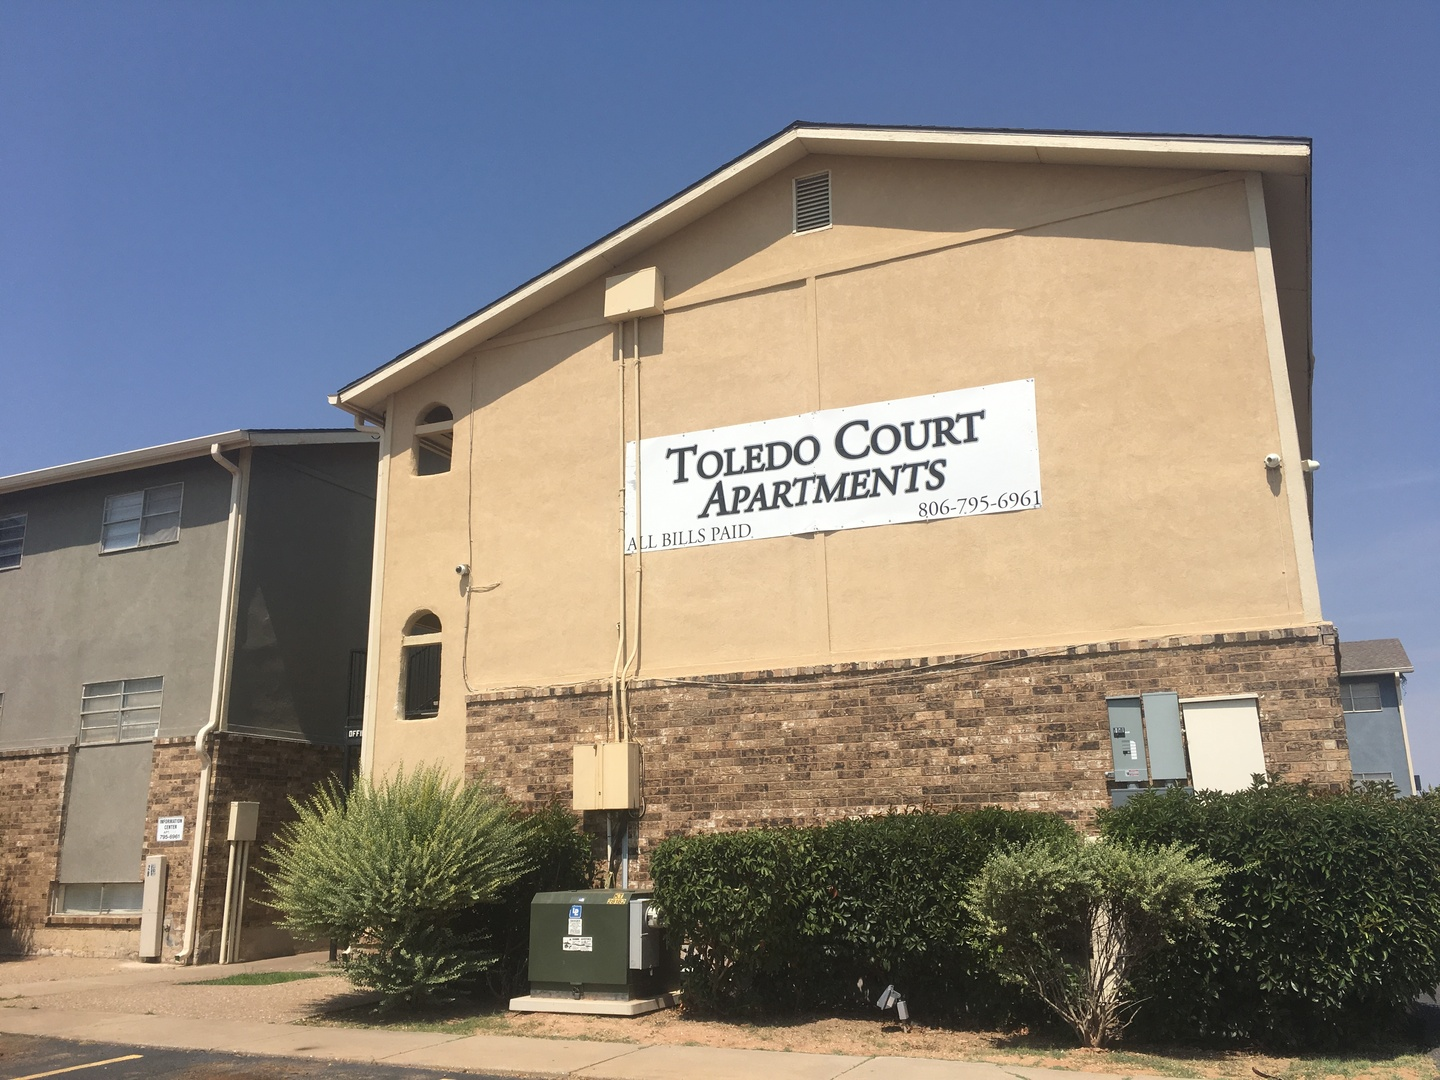 2 Bedroom Apartments All Bills Paid Amarillo Tx